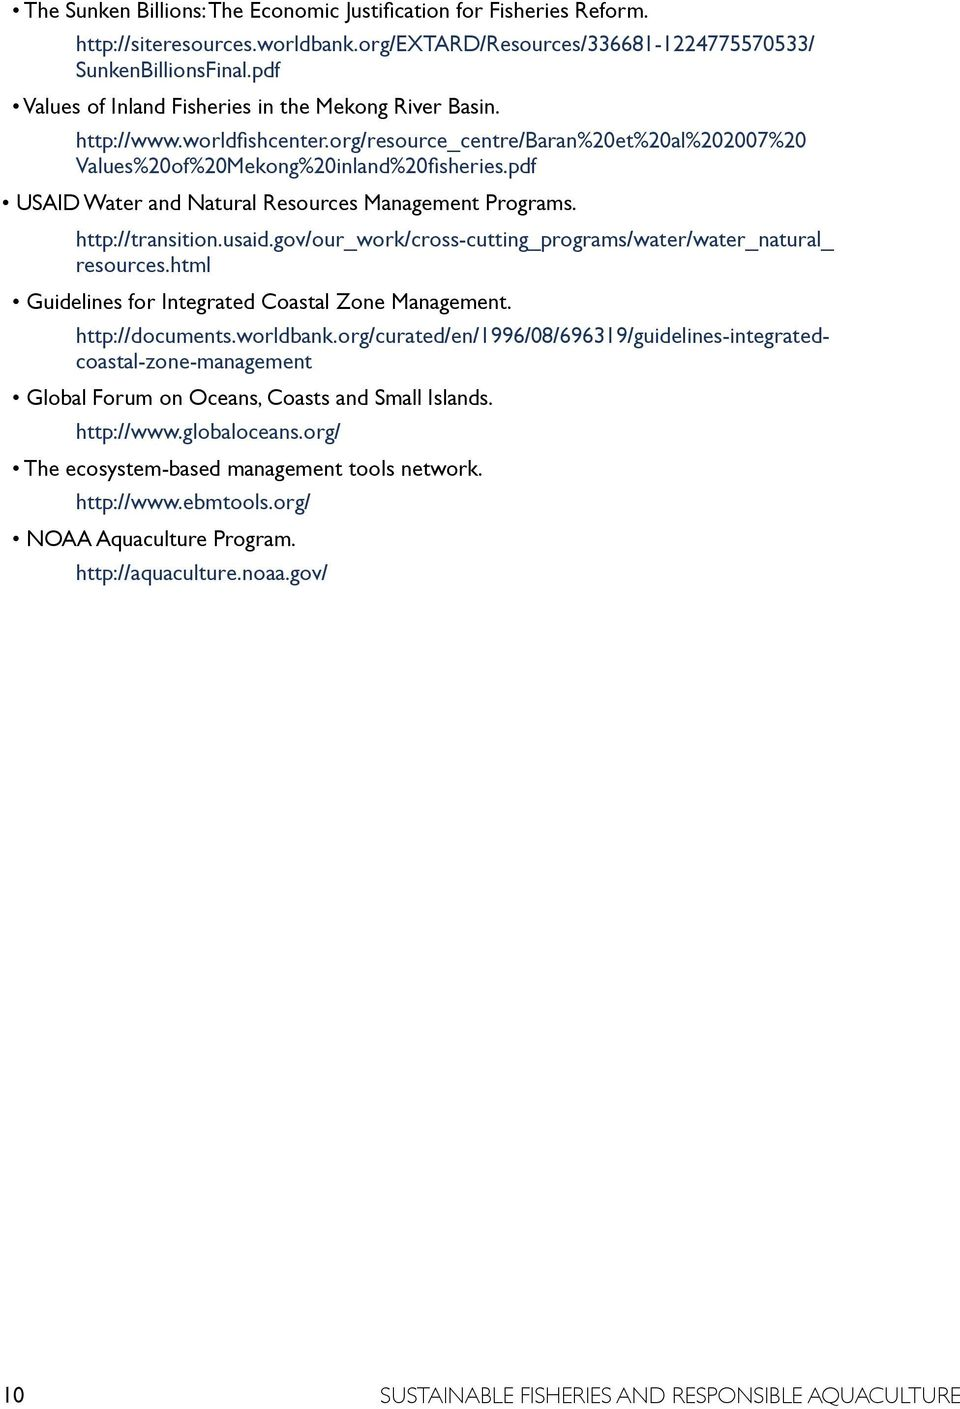 pdf USAID Water and Natural Resources Management Programs. http://transition.usaid.gov/our_work/cross-cutting_programs/water/water_natural_ resources.